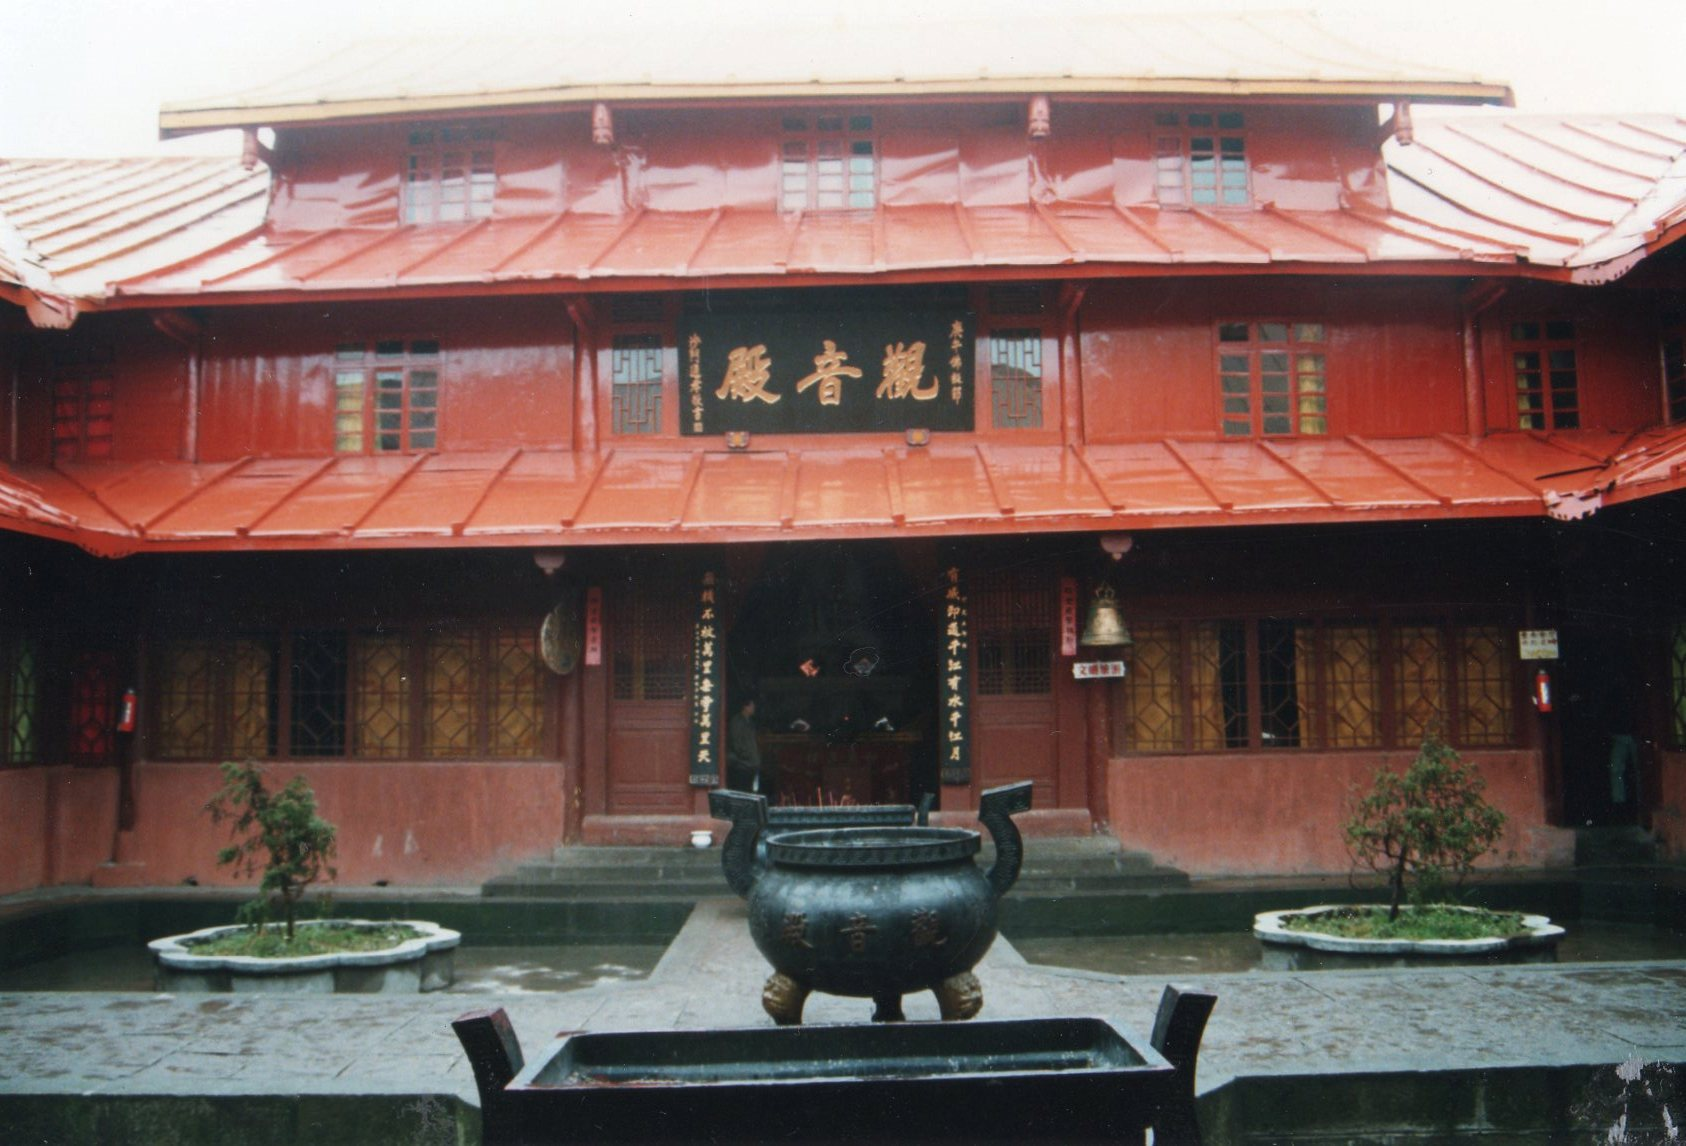 China Sichuan, Emei Shan, How it was in 1991 tin and peeling paint, Walkopedia